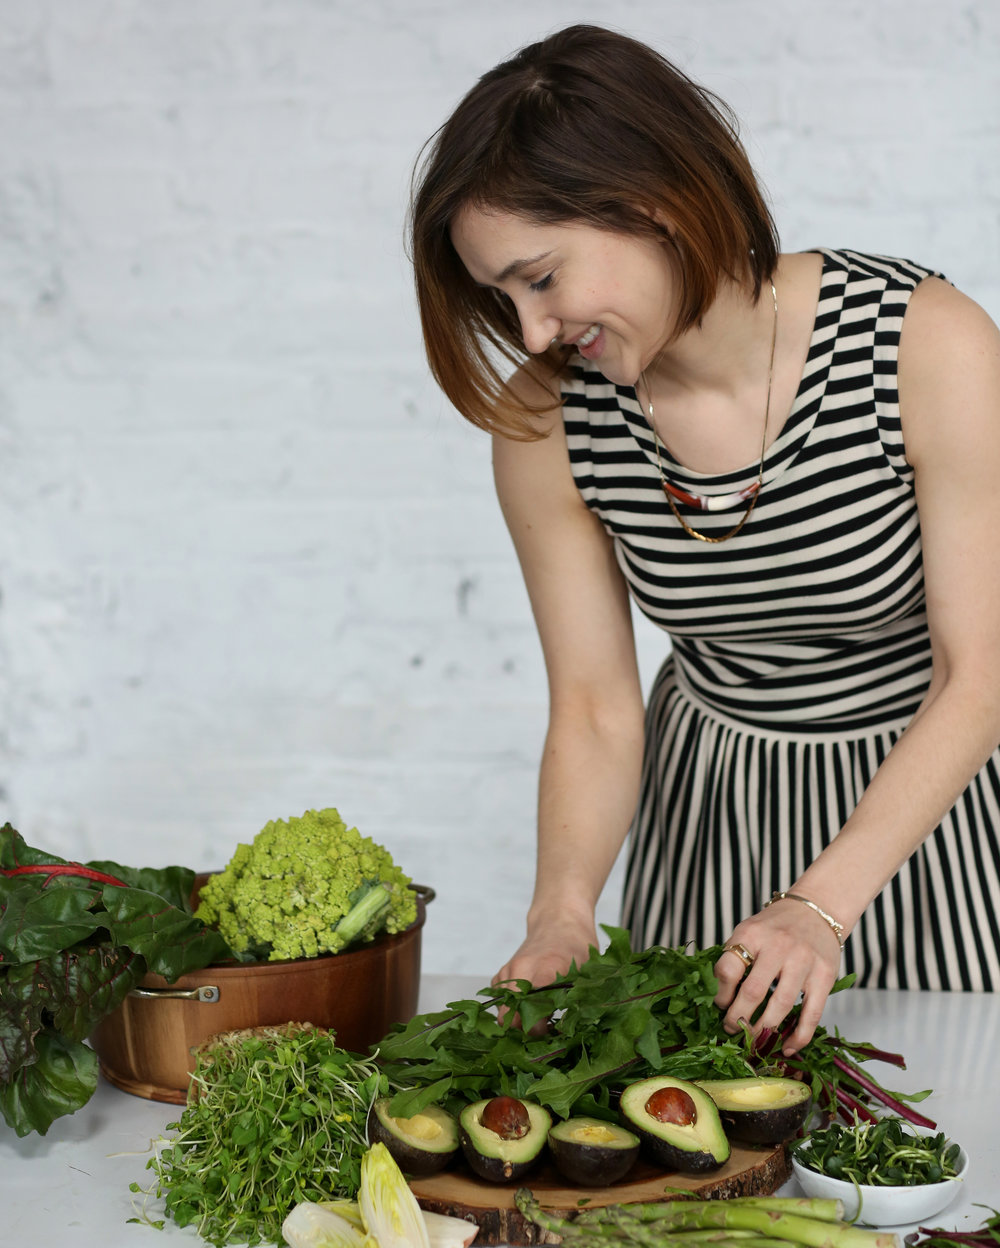 Changing Our Relationship with Food - WITH WELLNESS COACH AMANDA SKRIP